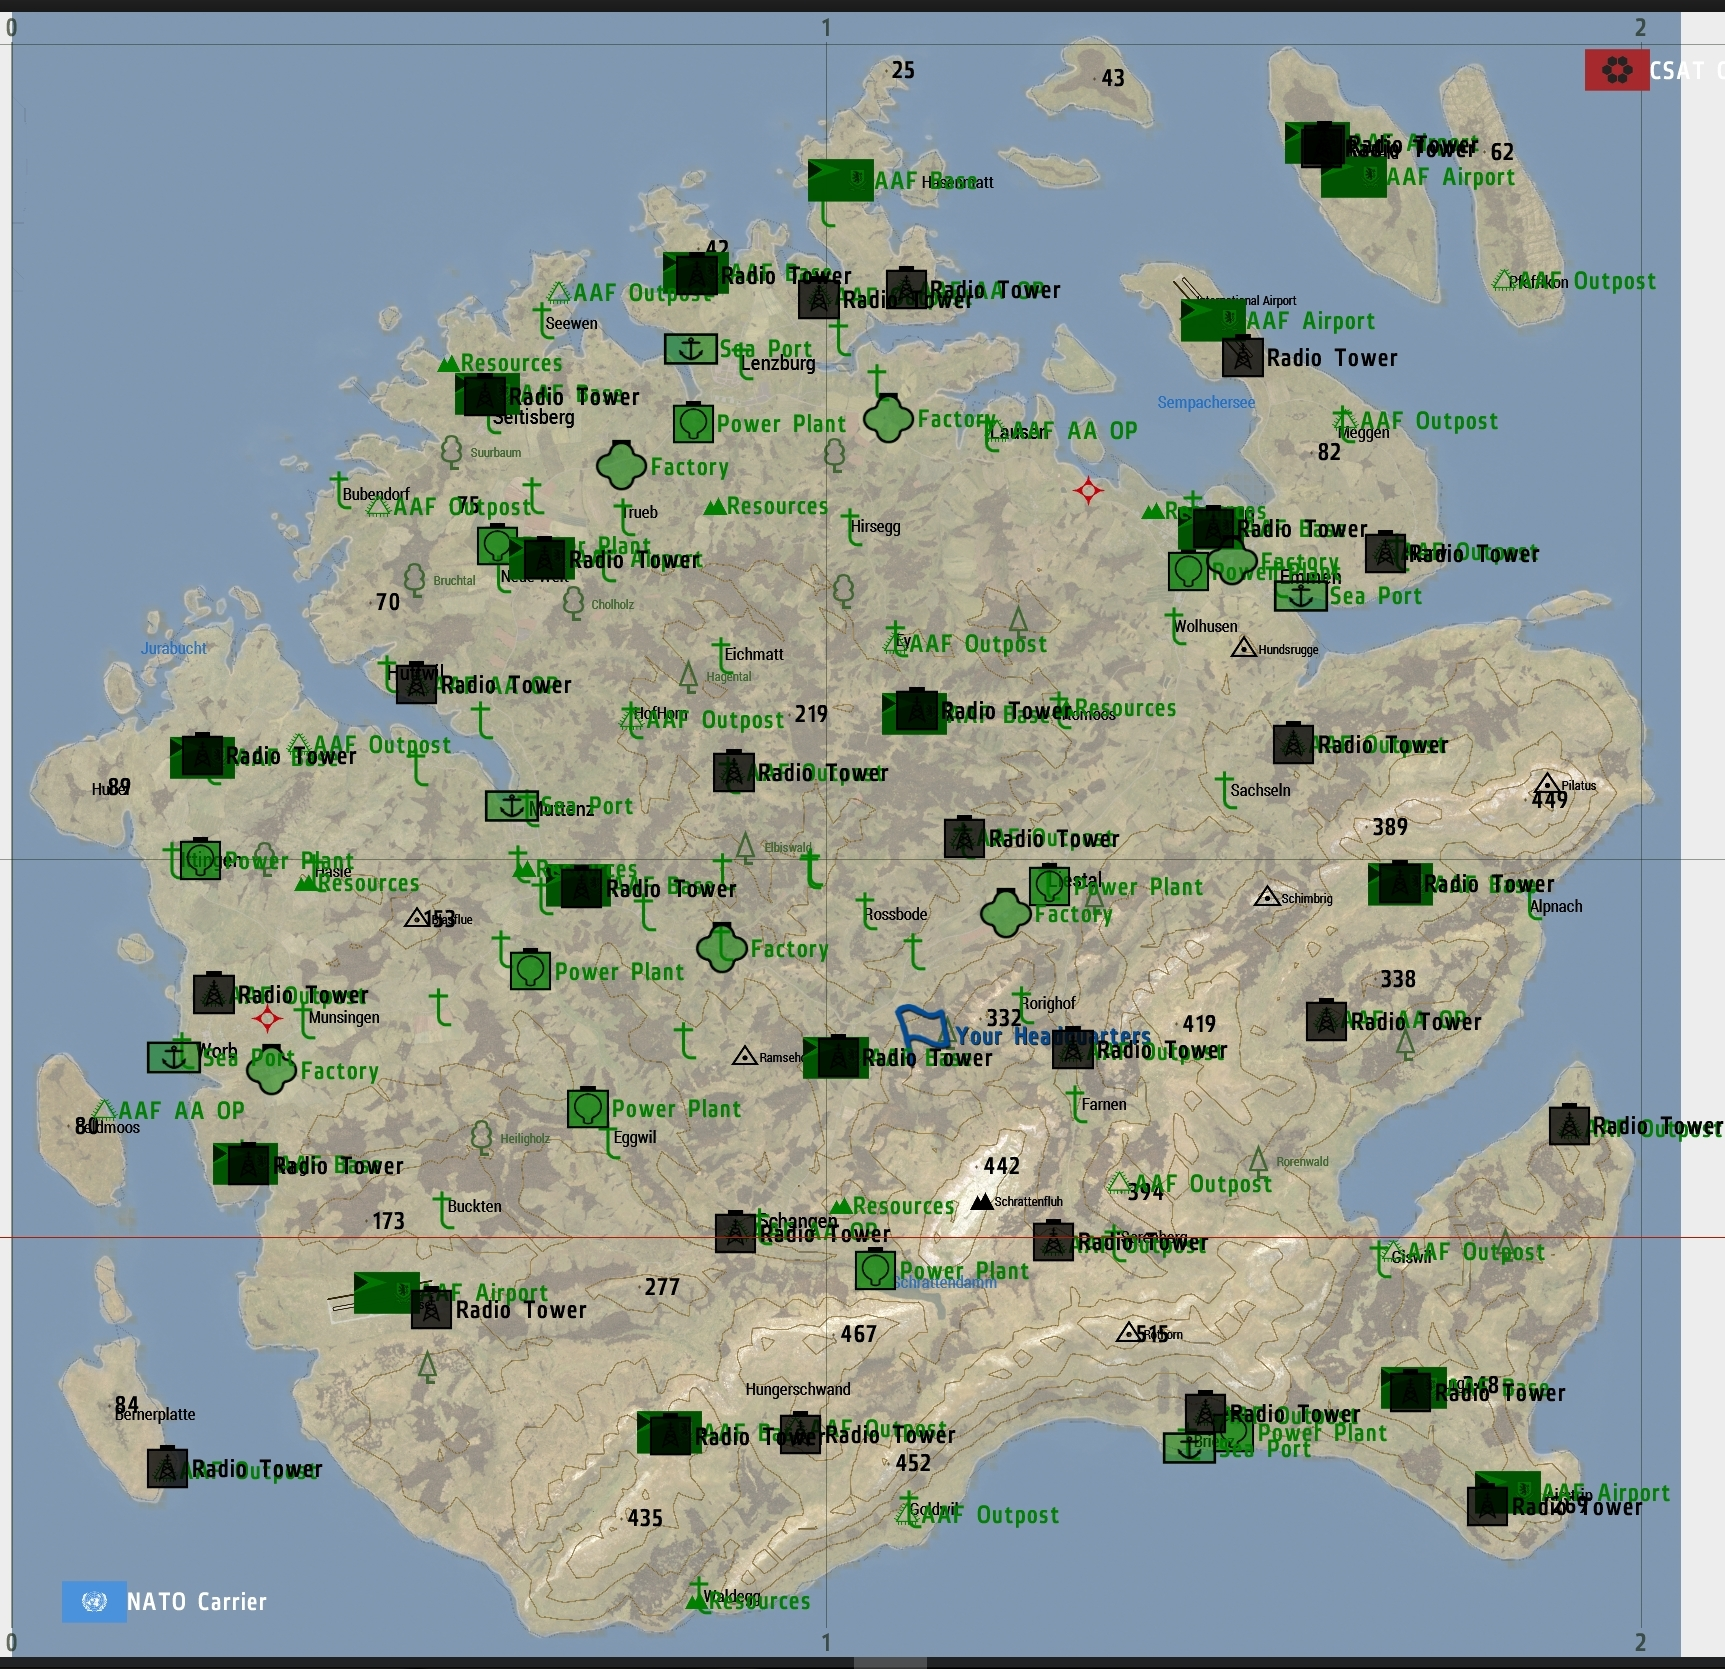 Map Porting from 1.7.14 on the elder scrolls online map, call of juarez map, the long dark map, dragon age: inquisition map, swat 4 map, among the sleep map, grand theft auto v map, dayz map, dead rising 3 map, the sims 4 map, euro truck simulator 2 map, tom clancy's endwar map, diablo 3 map, river city ransom map, valkyria chronicles 3 map, h1z1 map, empire: total war map, crysis map, asheron's call map, game of thrones map,